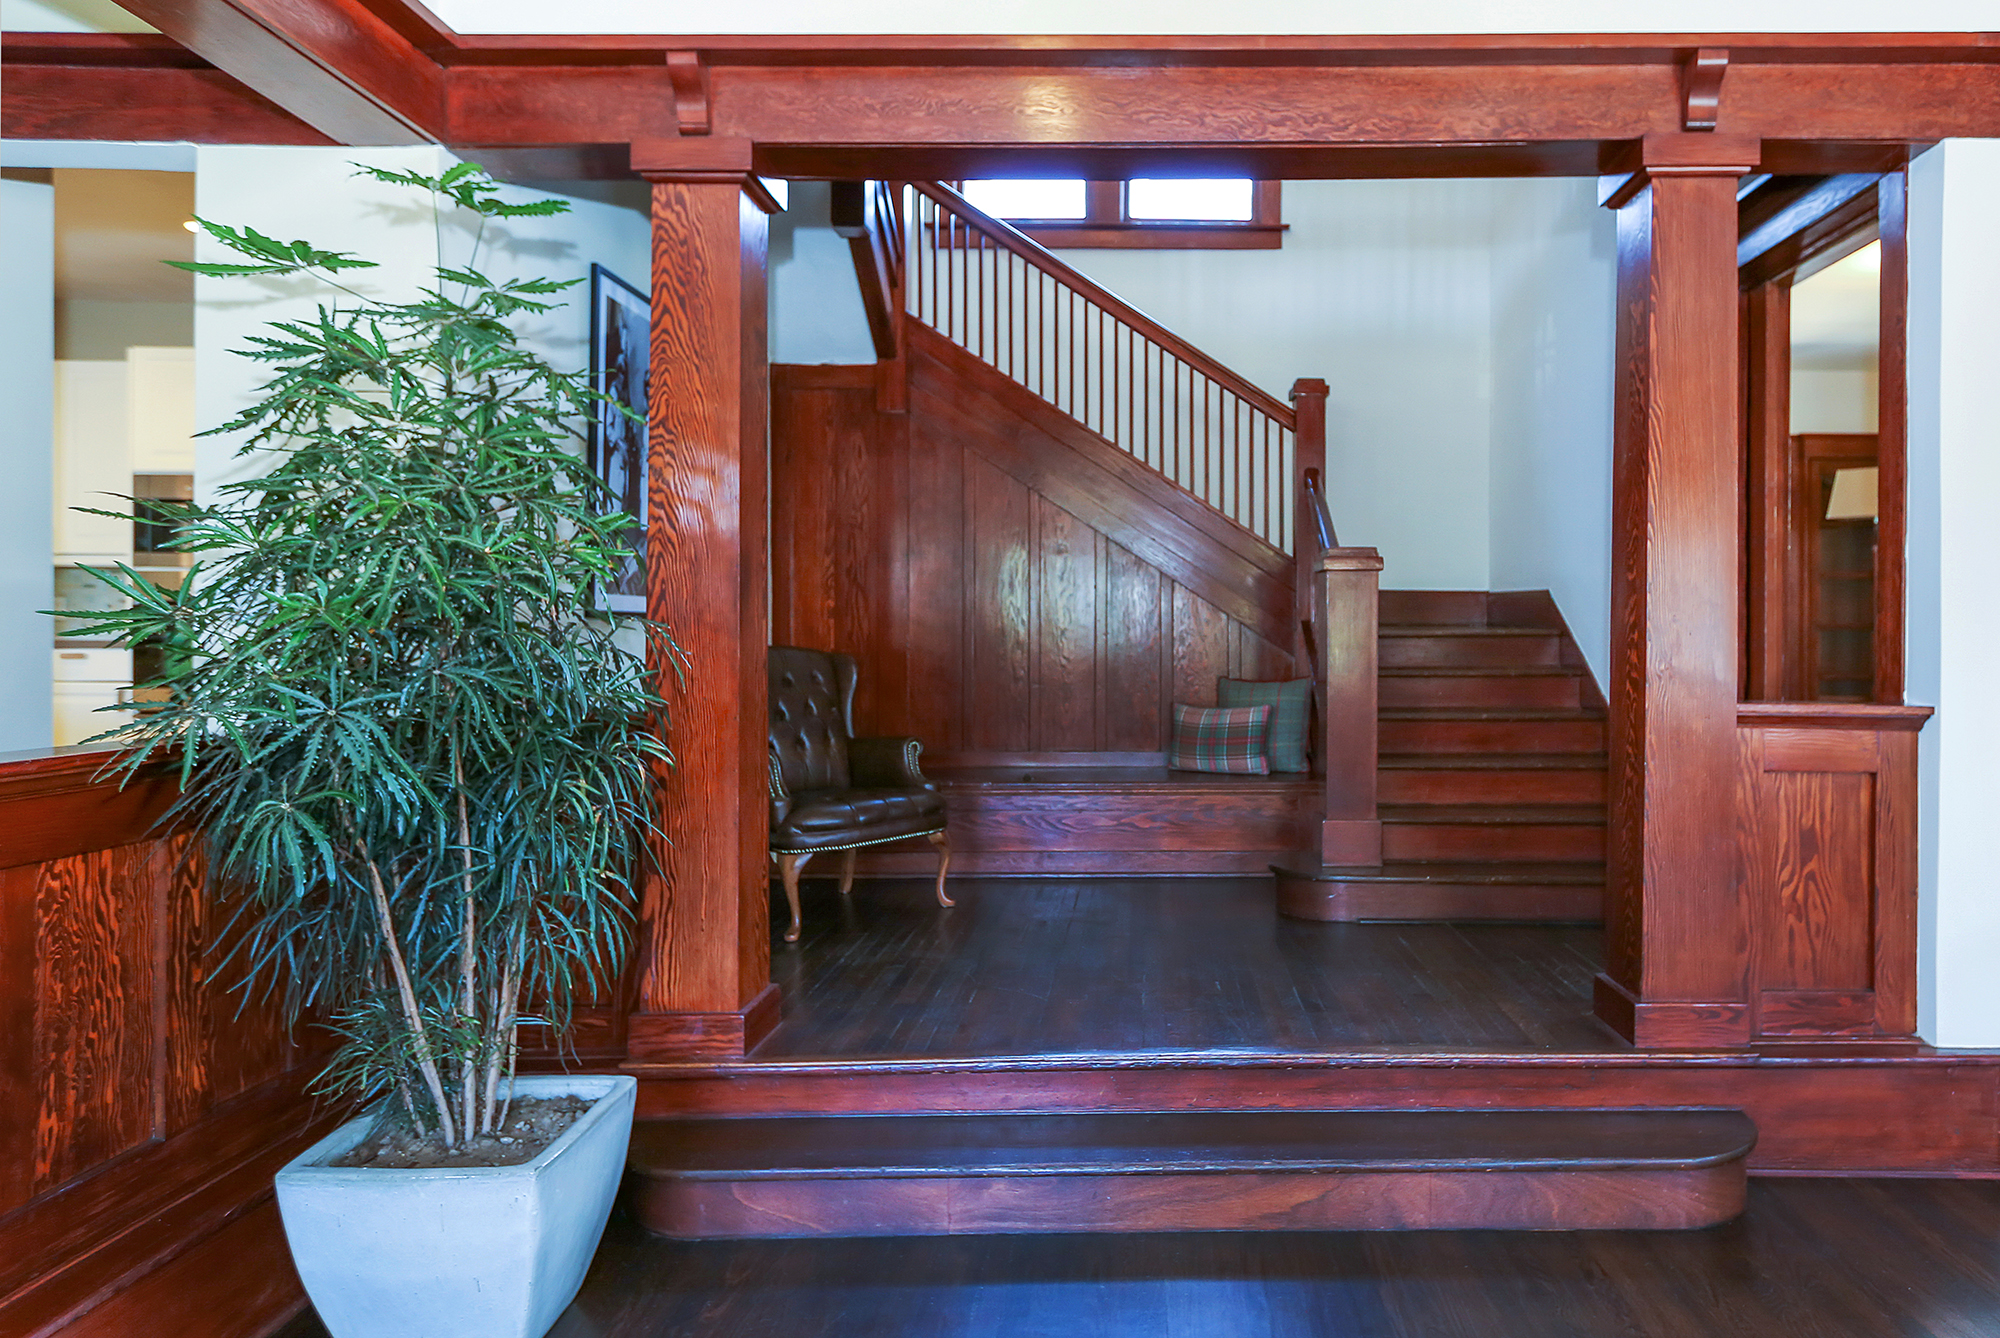 The wrap-around staircase is literally and figuratively a centerpiece of the home. It features landing at the bottom that can easily accommodate a piano, and another landing at the top, which is large enough to be its own gathering area.